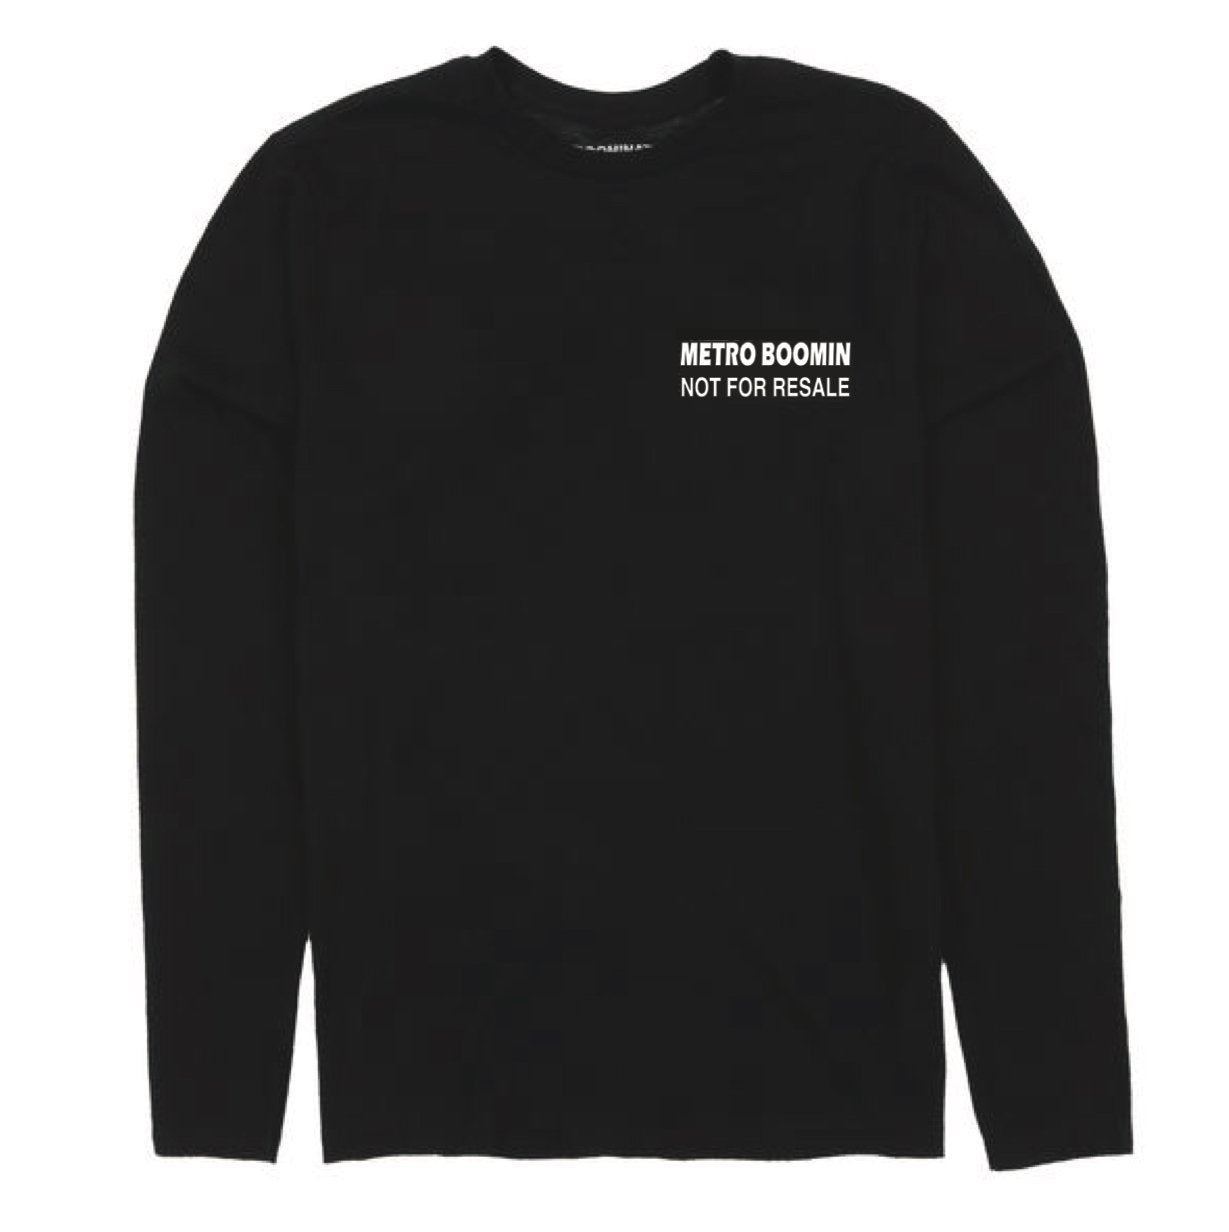 NOT FOR RESALE LONG SLEEVE T